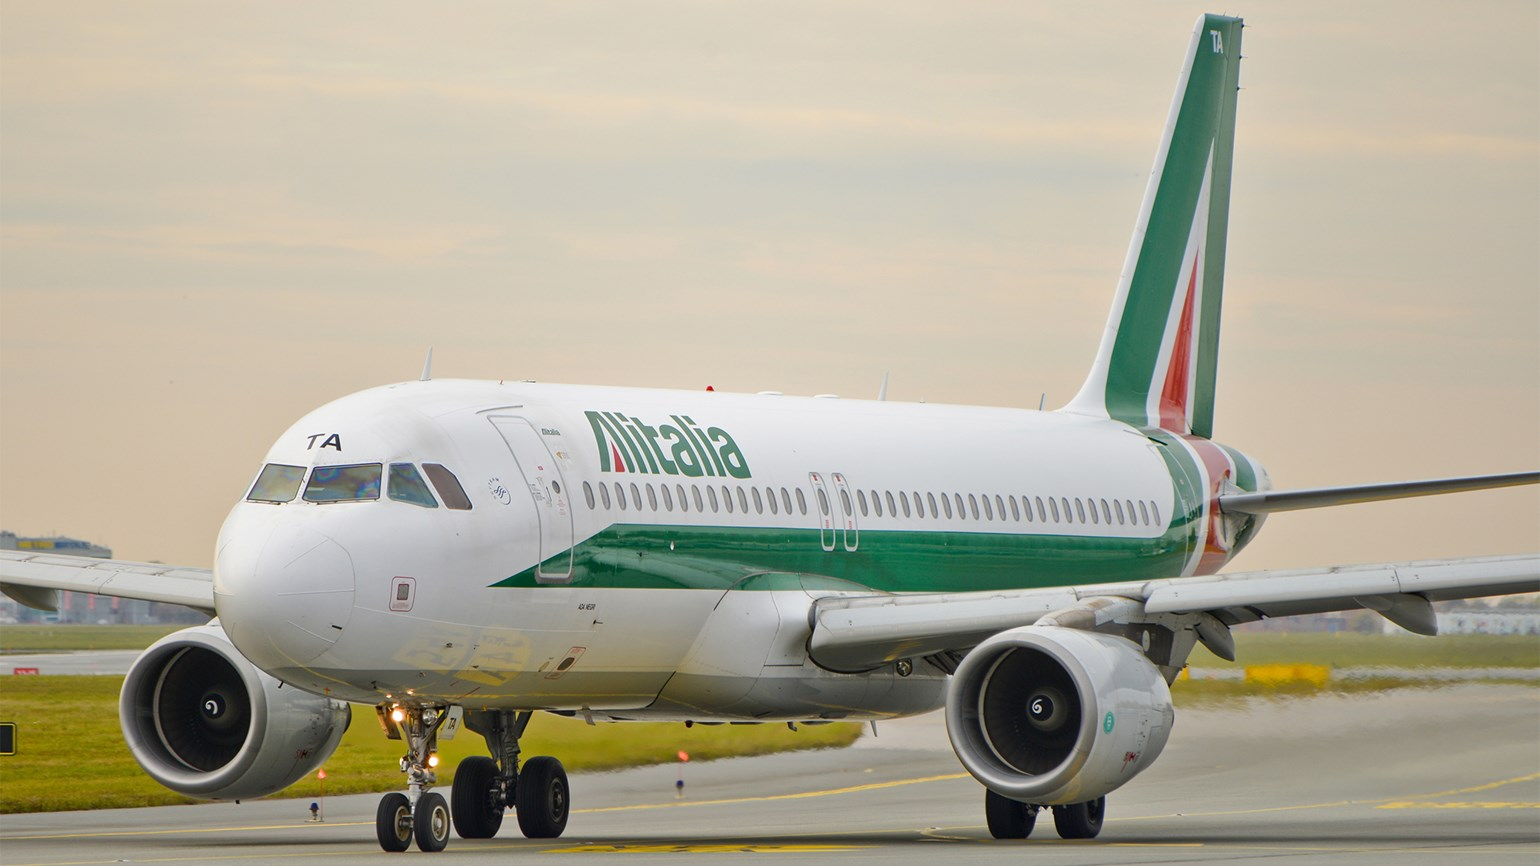 EasyJet won't be part of Alitalia rescue